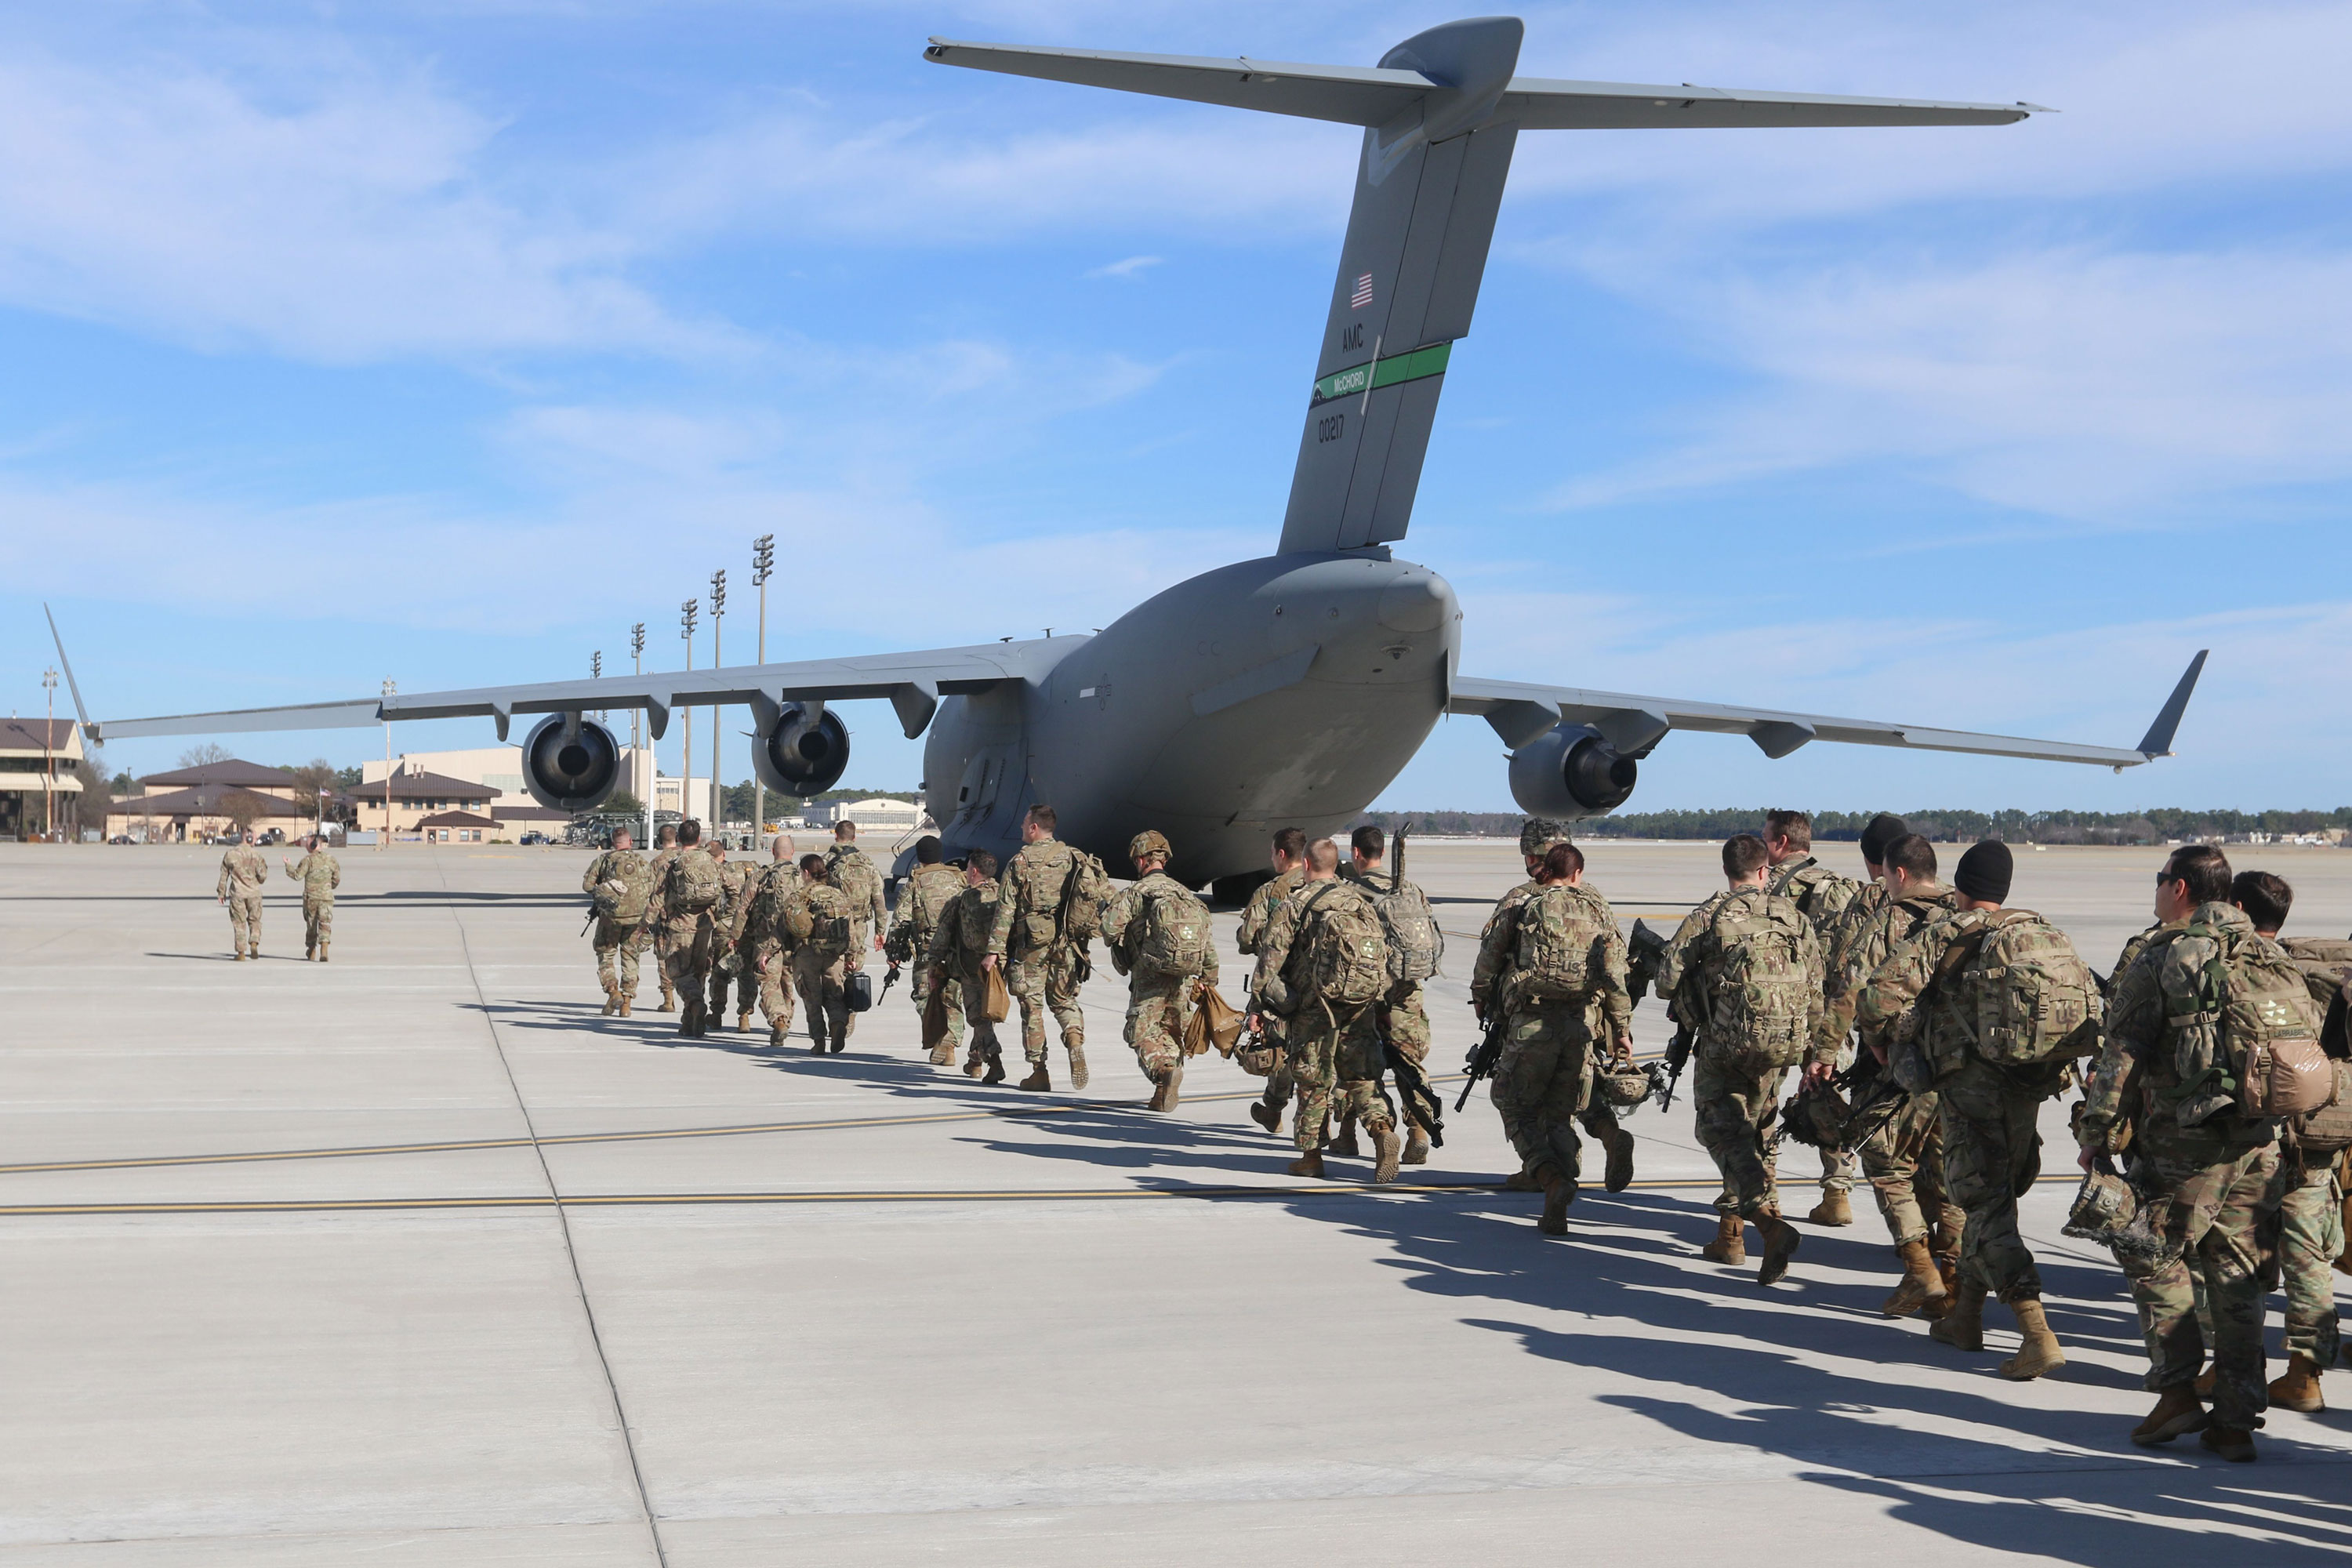 Paratroopers assigned to the 2nd Battalion, 504th Parachute Infantry Regiment, 1st Brigade Combat Team, 82nd Airborne Division, deploy from Pope Army Airfield in North Carolina on January 1.